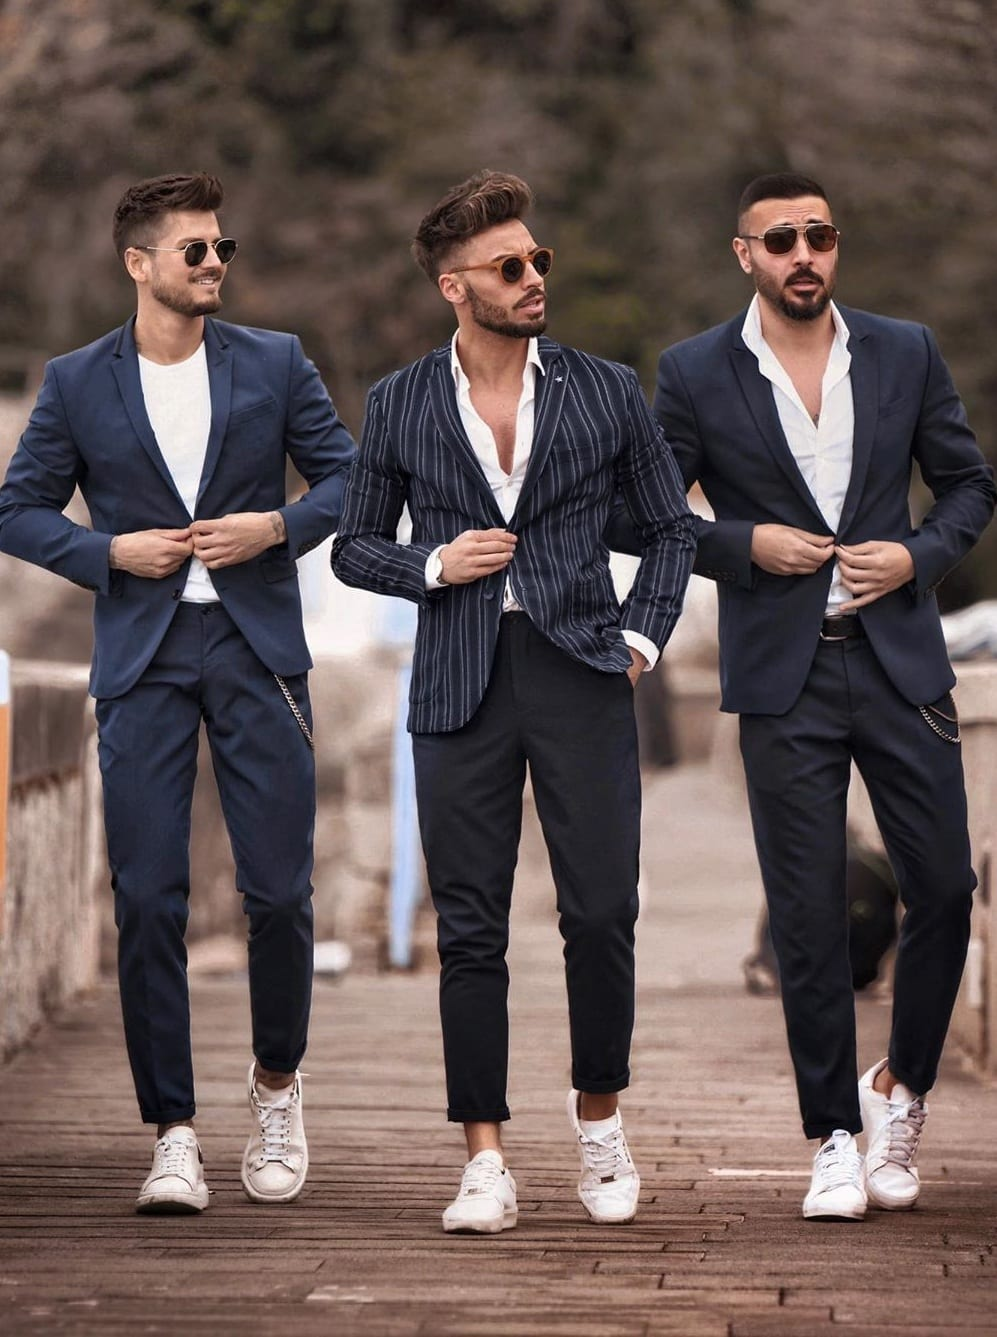 Matching Suit Outfits for Men's Street Style